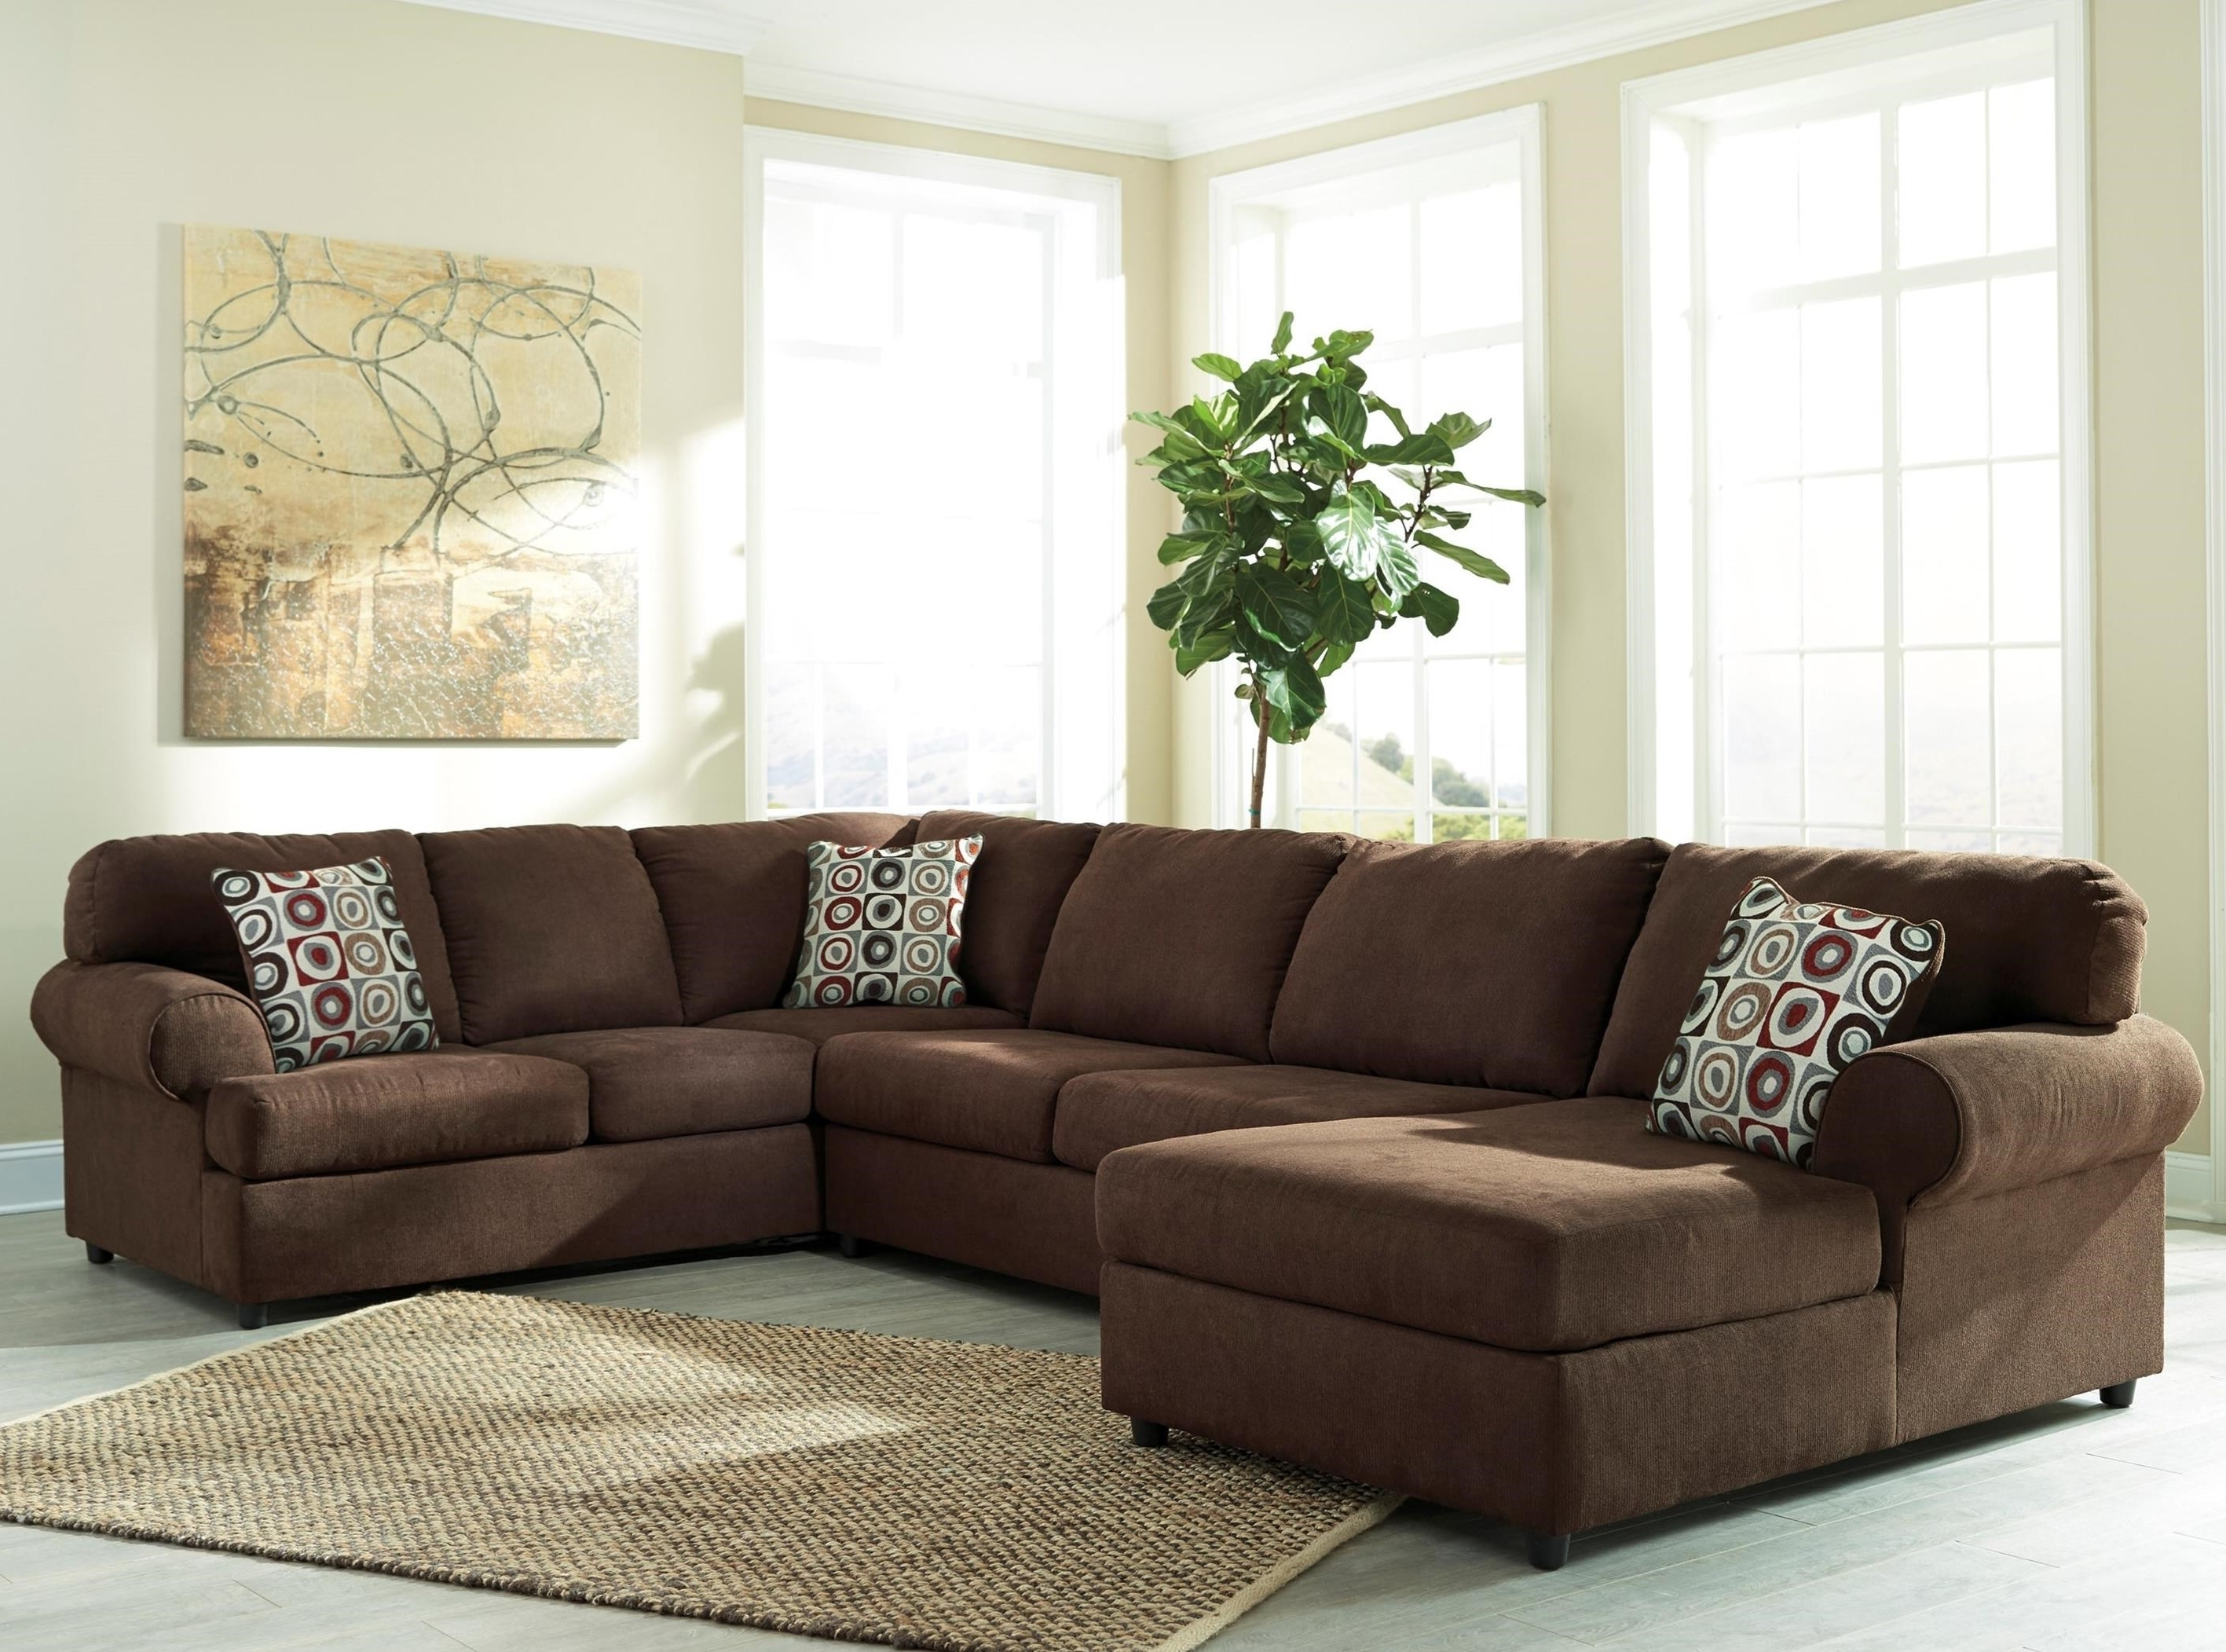 Ashley Furniture Chaise Sofas With Regard To 2018 Signature Designashley Jayceon 3 Piece Sectional With Left (View 5 of 15)